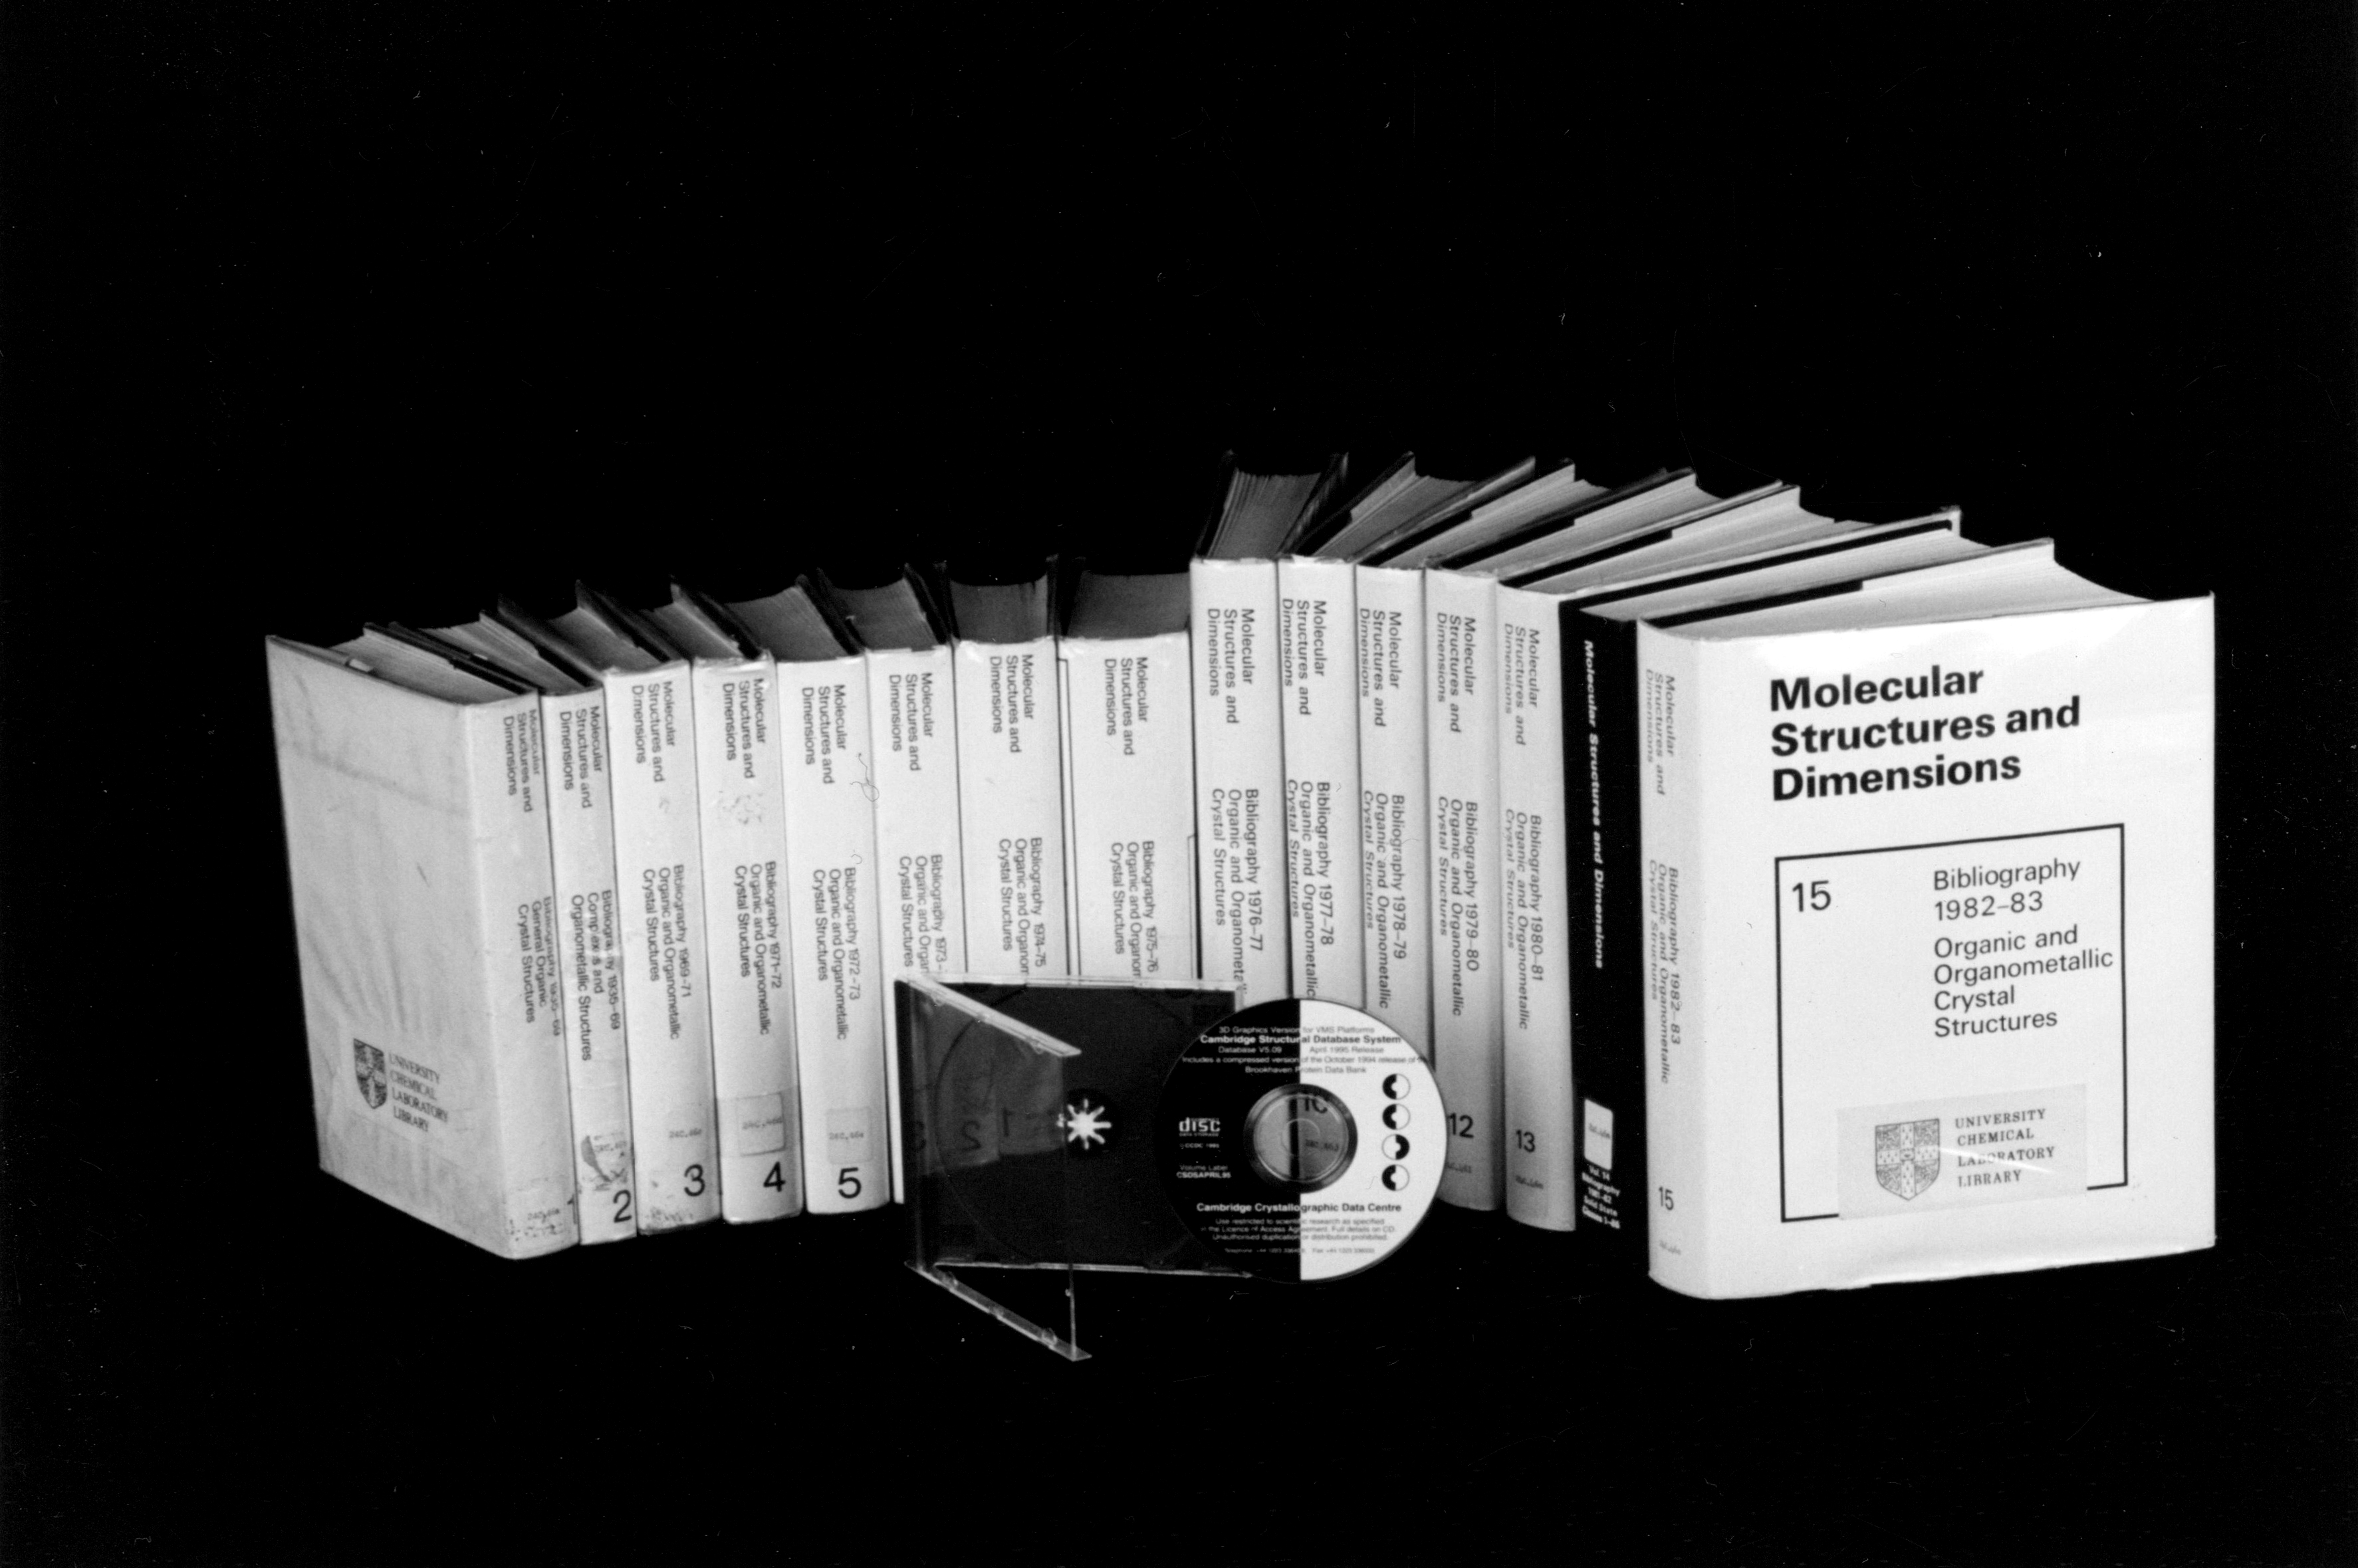 Early versions of the CSD in book form alongside a later version of the CSD on CD